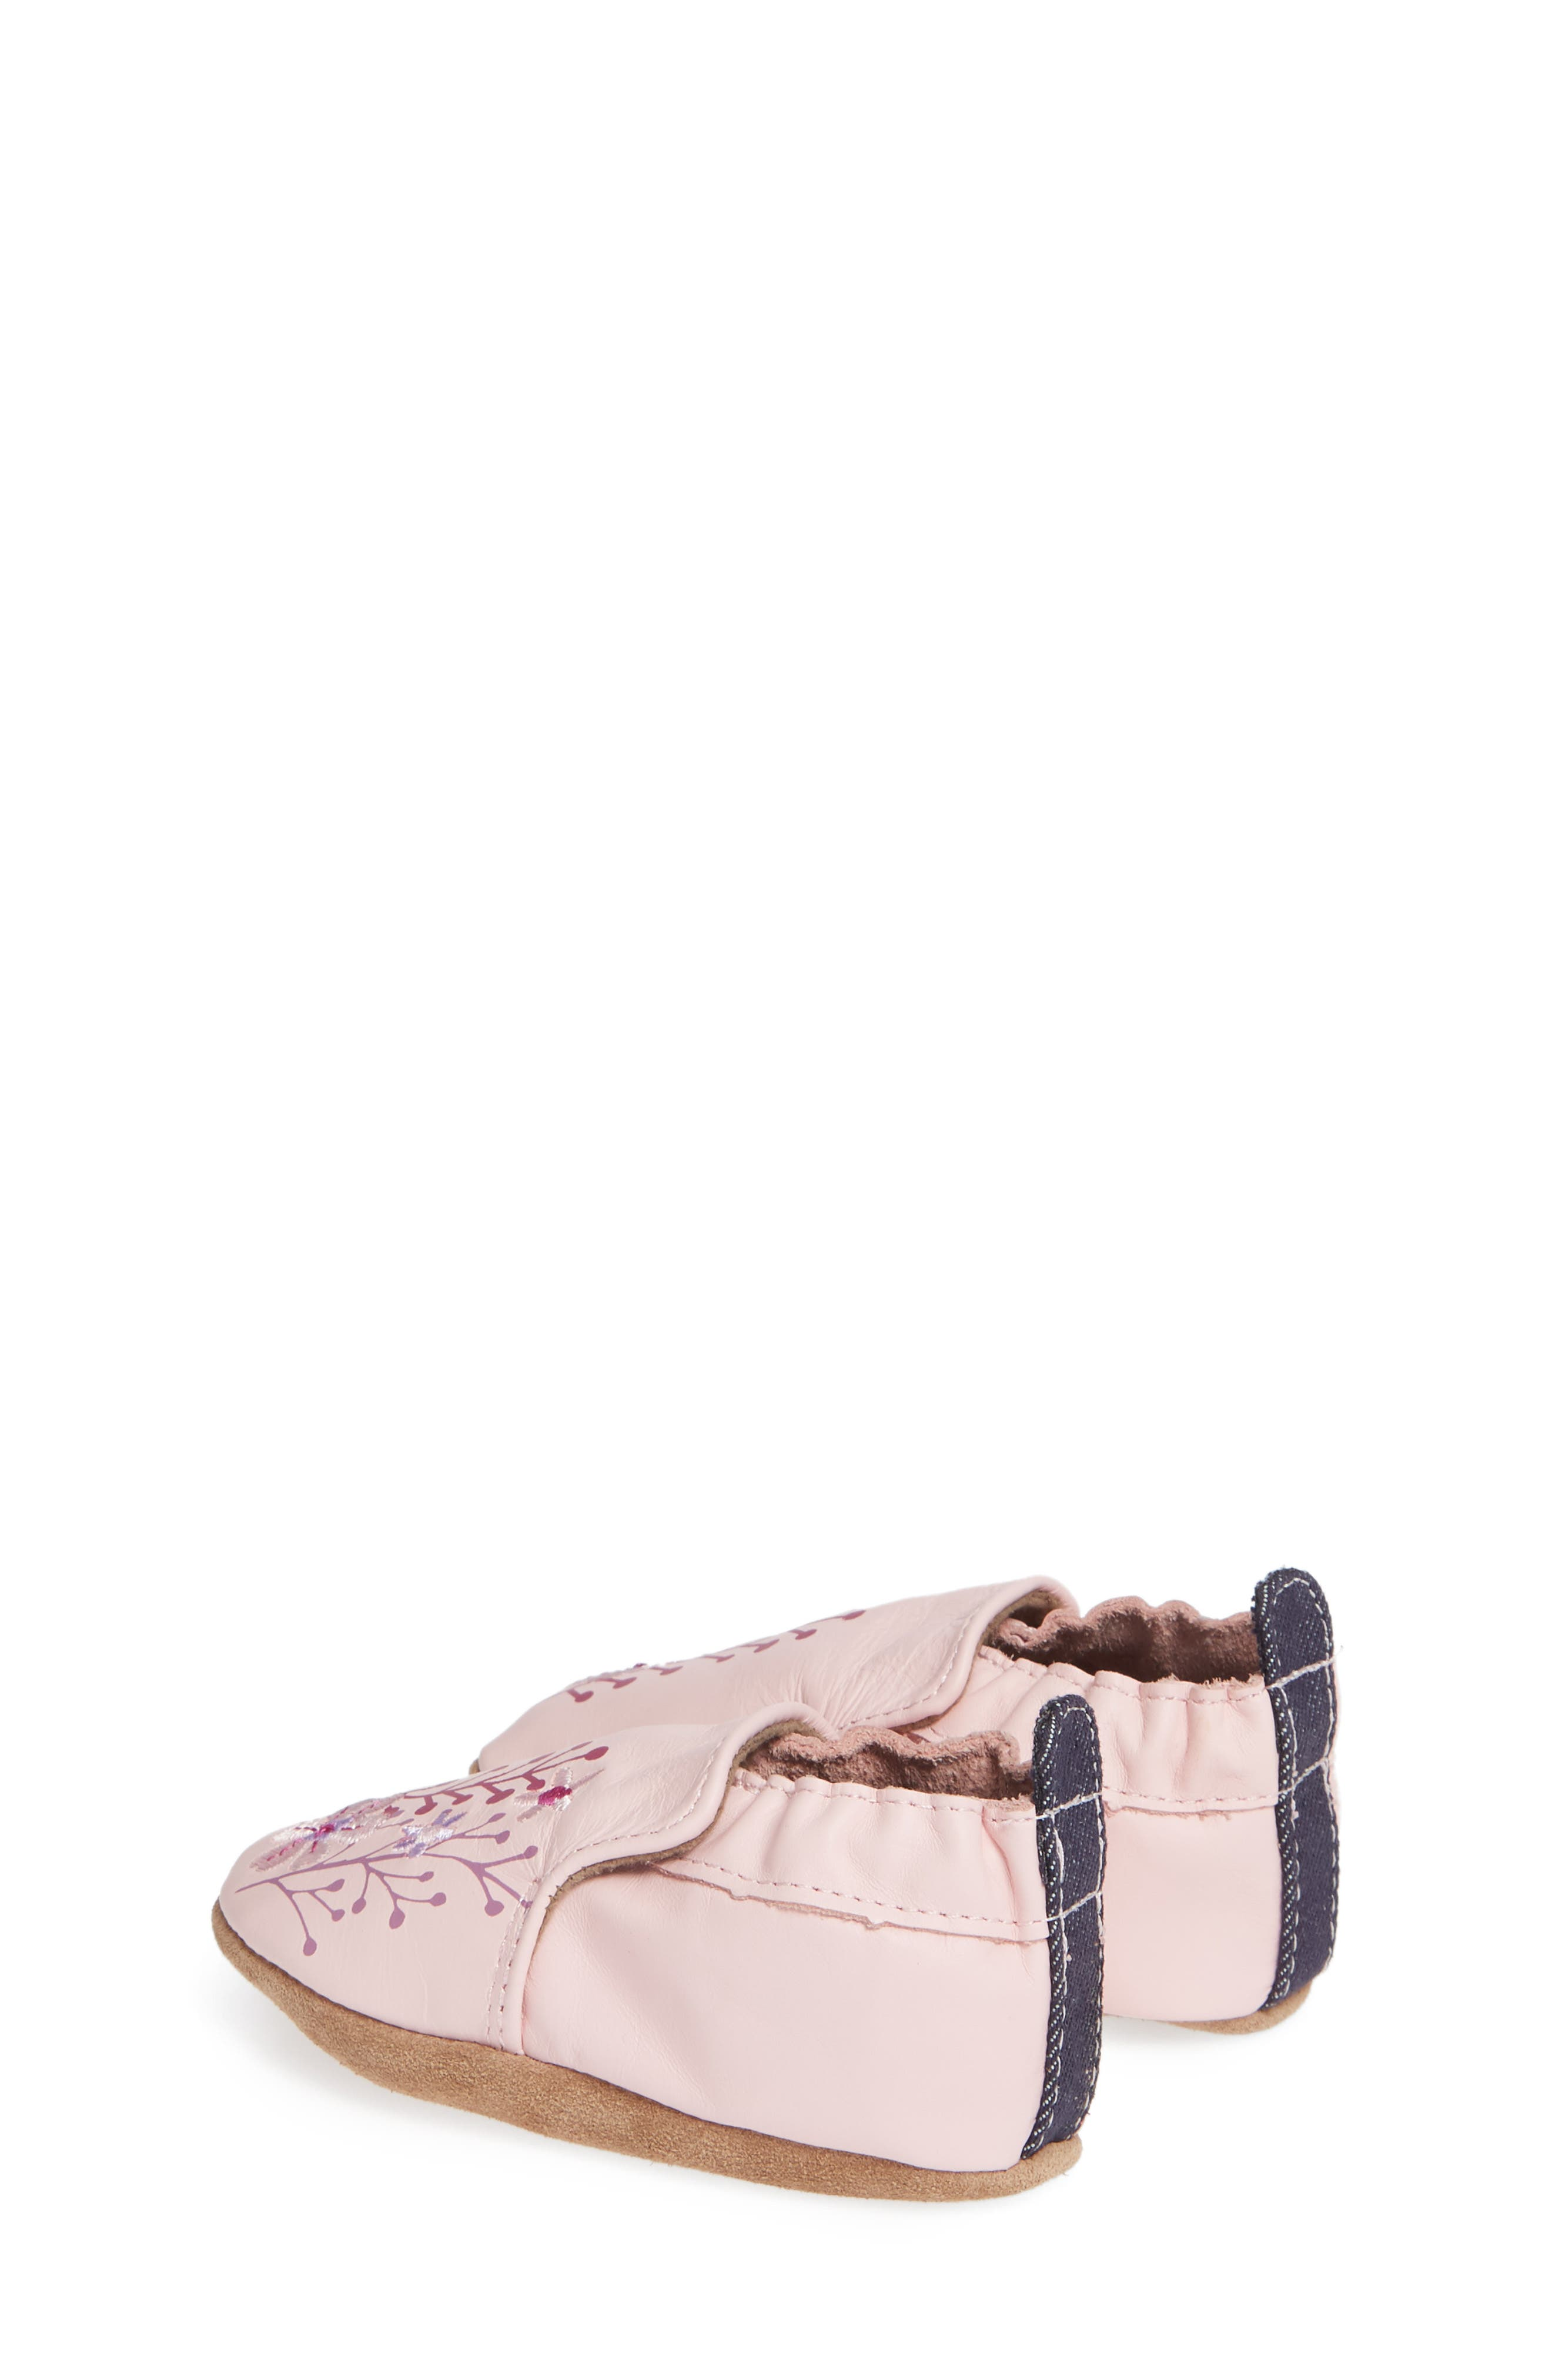 Blooming Floral Crib Shoe,                             Alternate thumbnail 2, color,                             LIGHT PINK